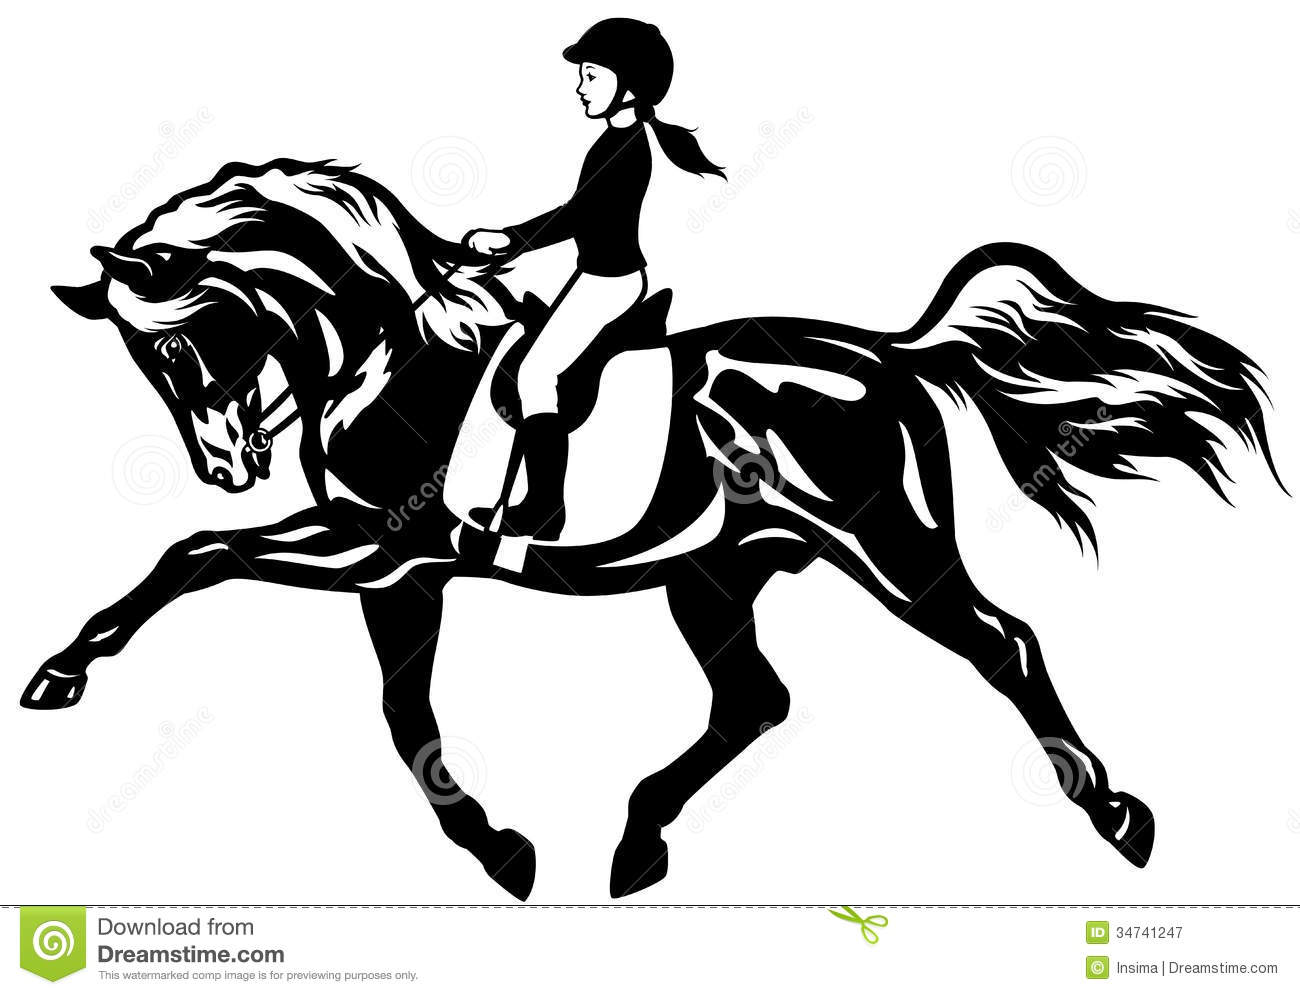 hight resolution of kid riding horseequestrian sportblack and white illustration equestrian sport